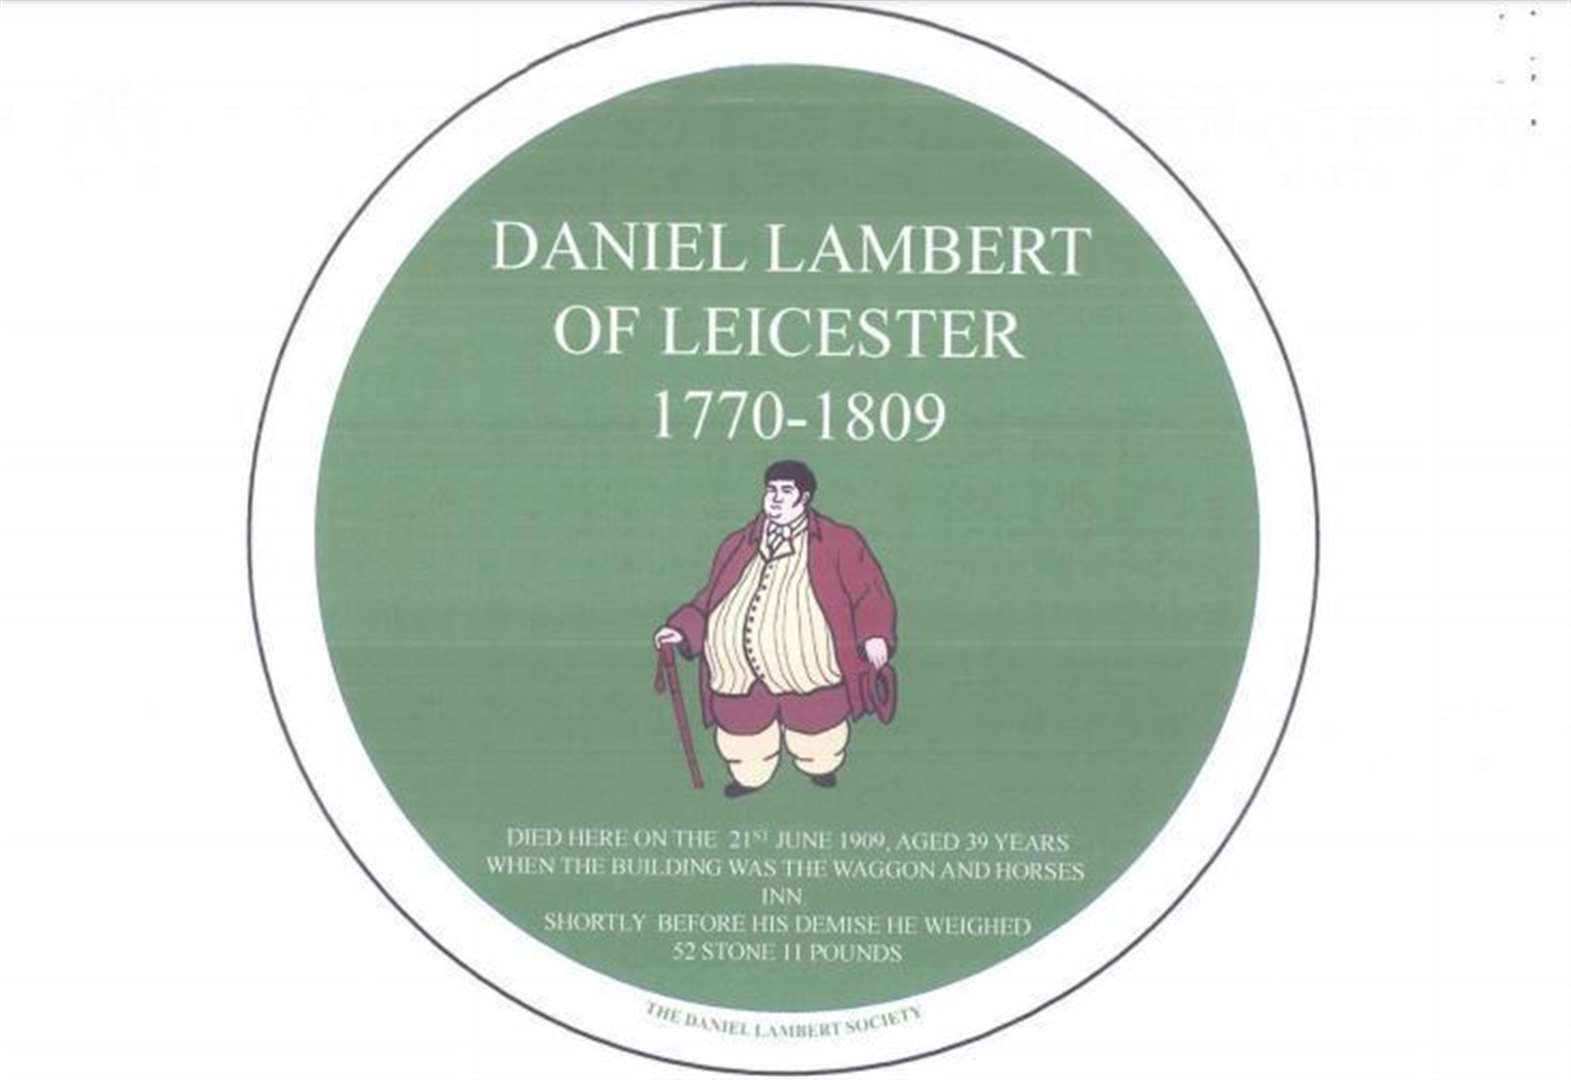 Plaque for 'big man' Daniel Lambert to go up in November